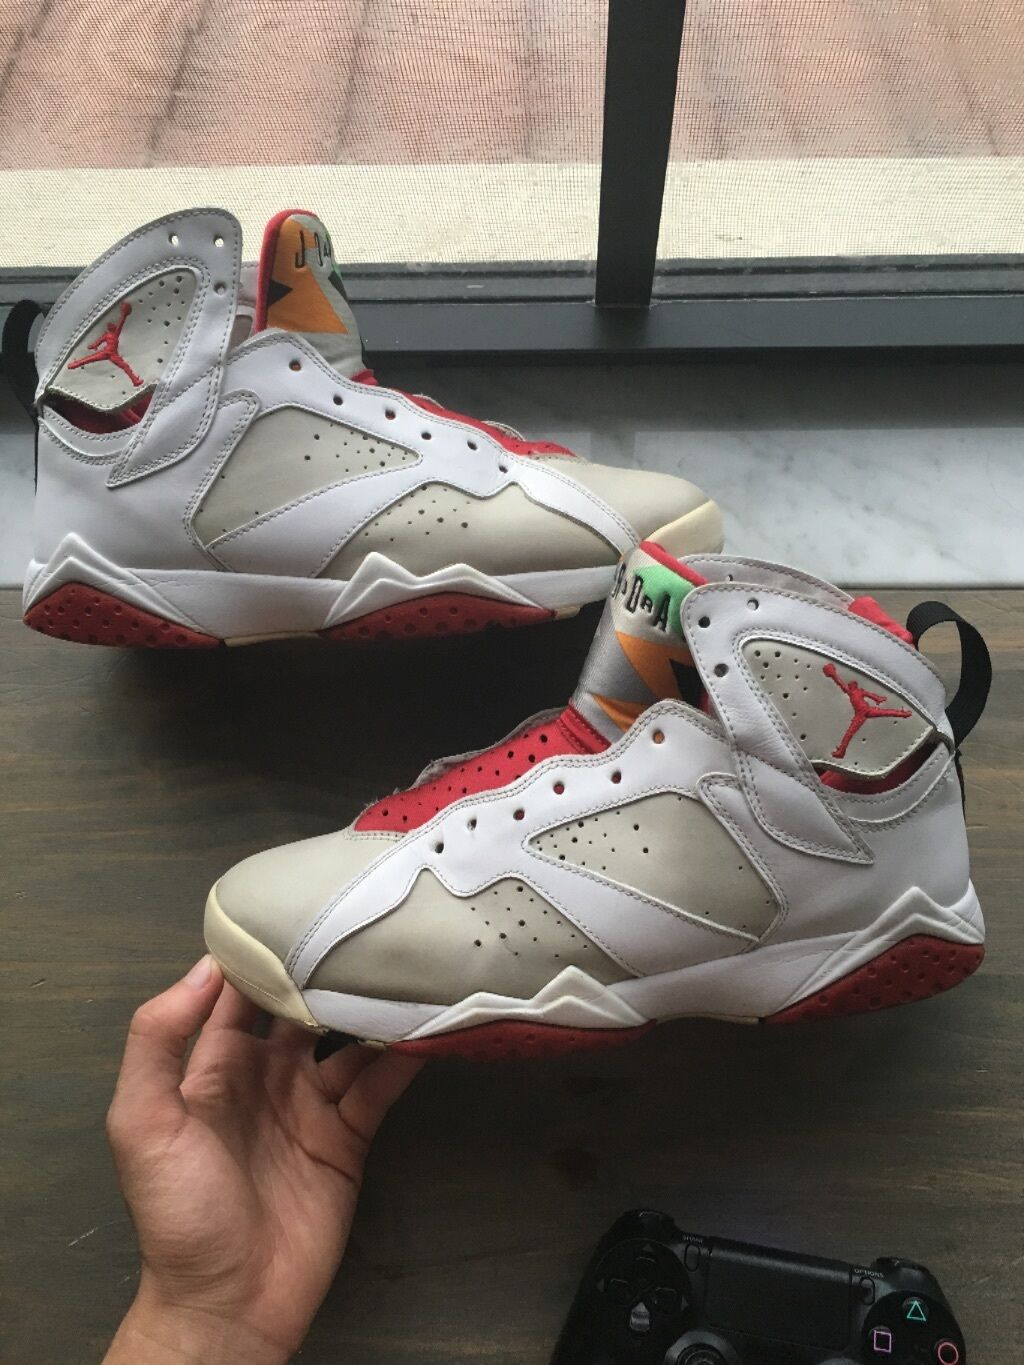 The most popular shoes for men and women mens retro cdp pack hare 7s size 9.5 100% authentic